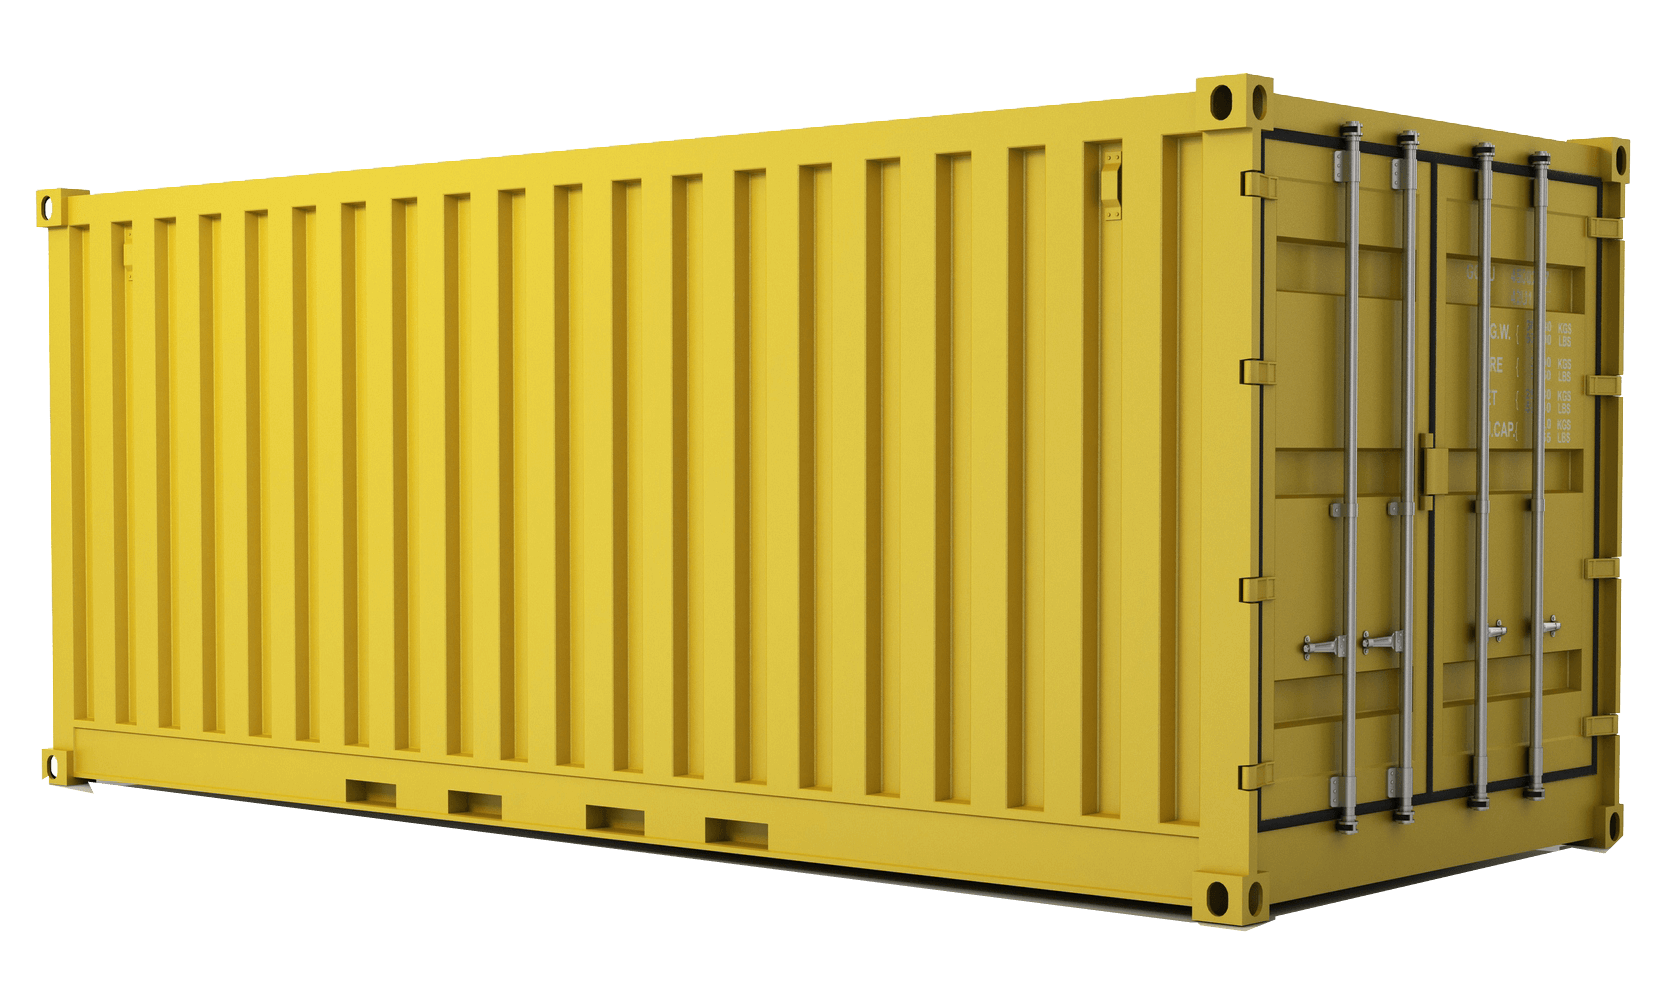 Shipping crate png. Container door opening trucker